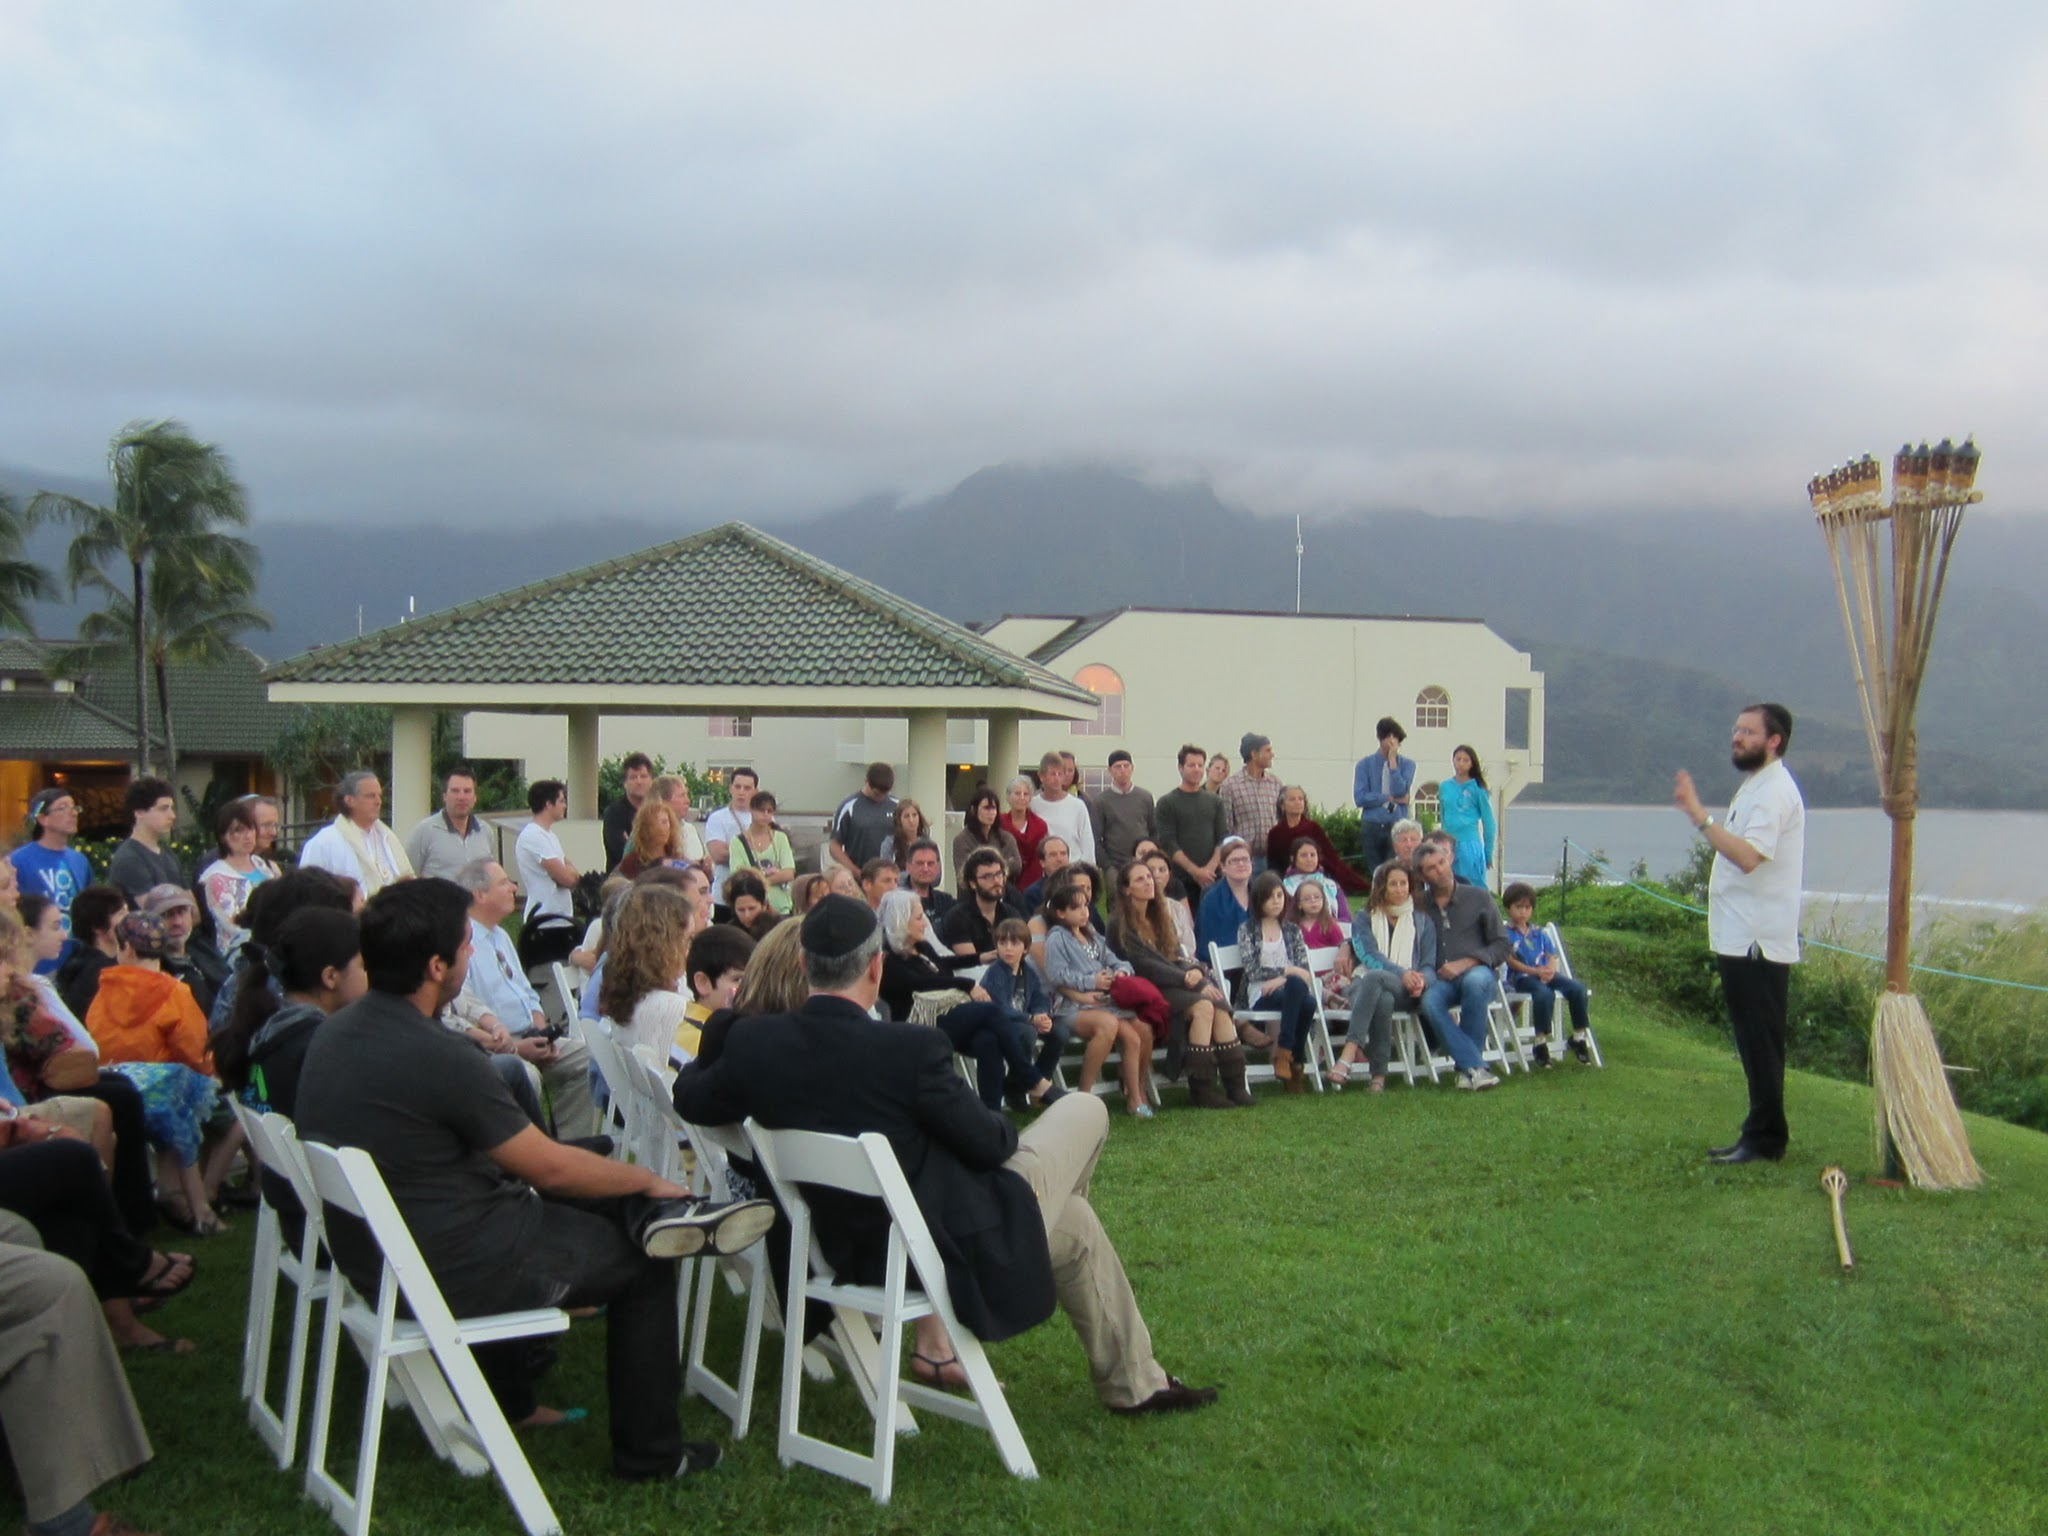 Photo: Over 100 Jews gathered on Kauai's North Shore